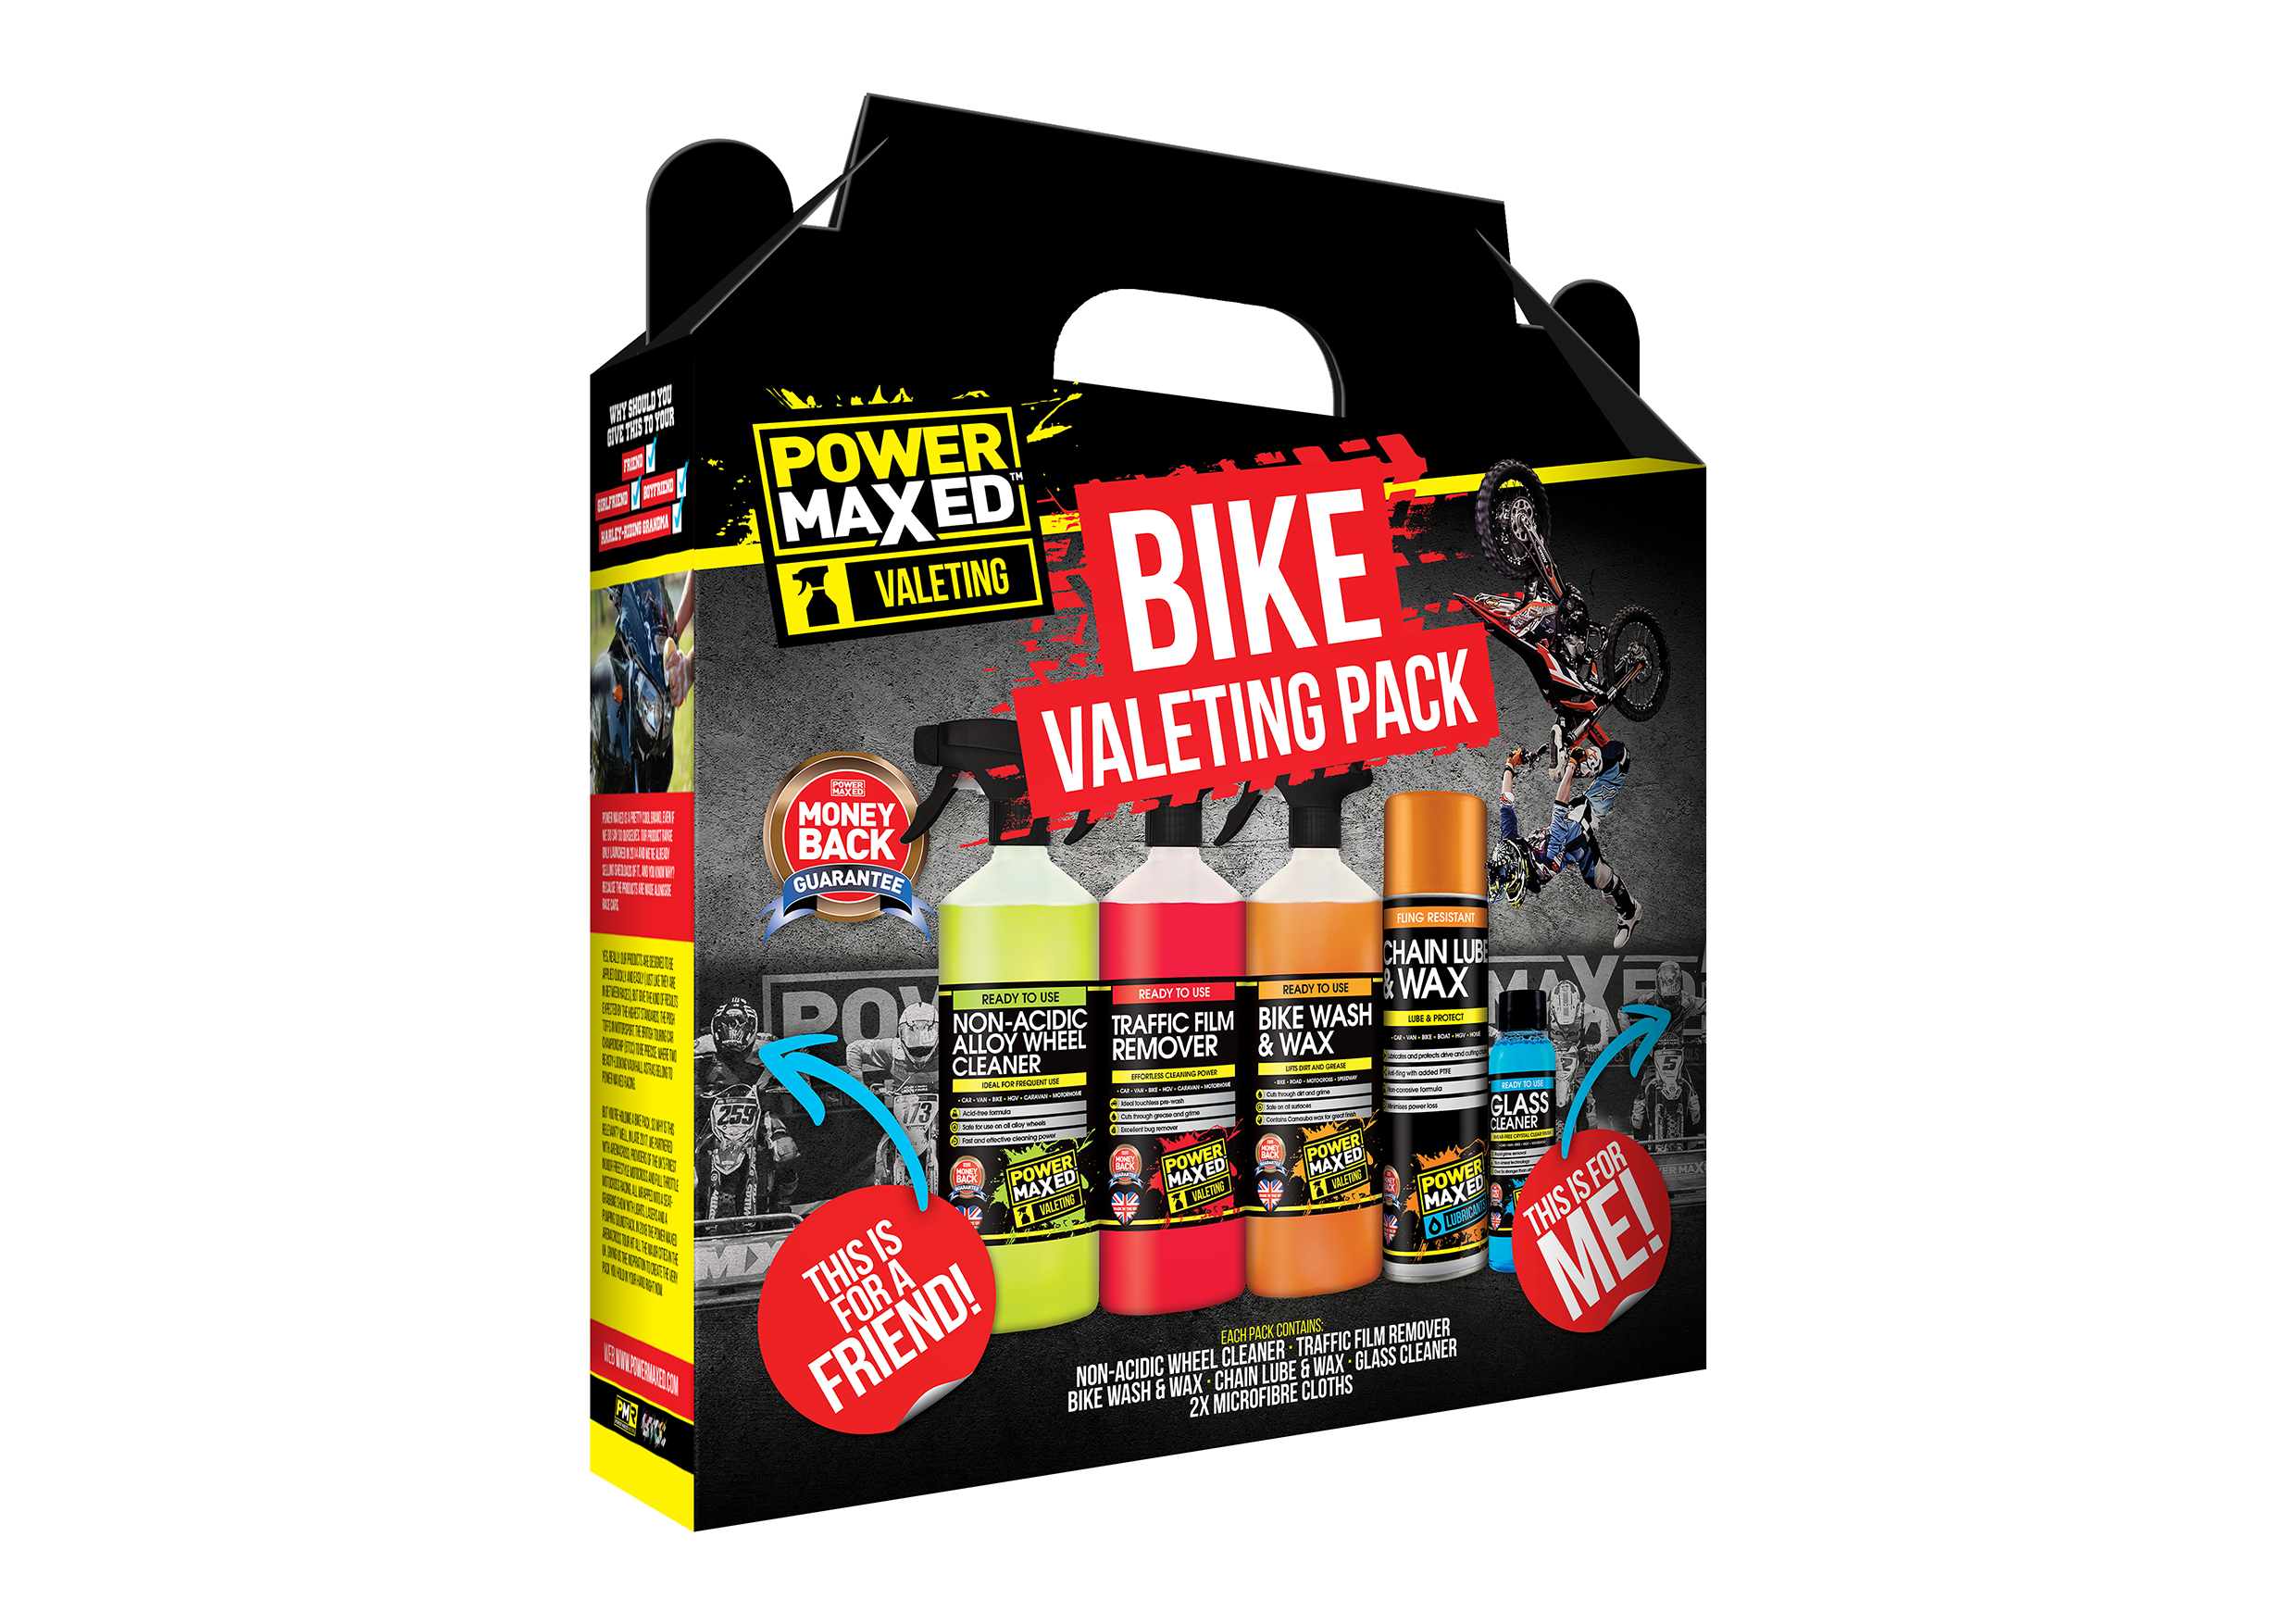 Power Maxed Bike Valeting Pack  sweepstakes